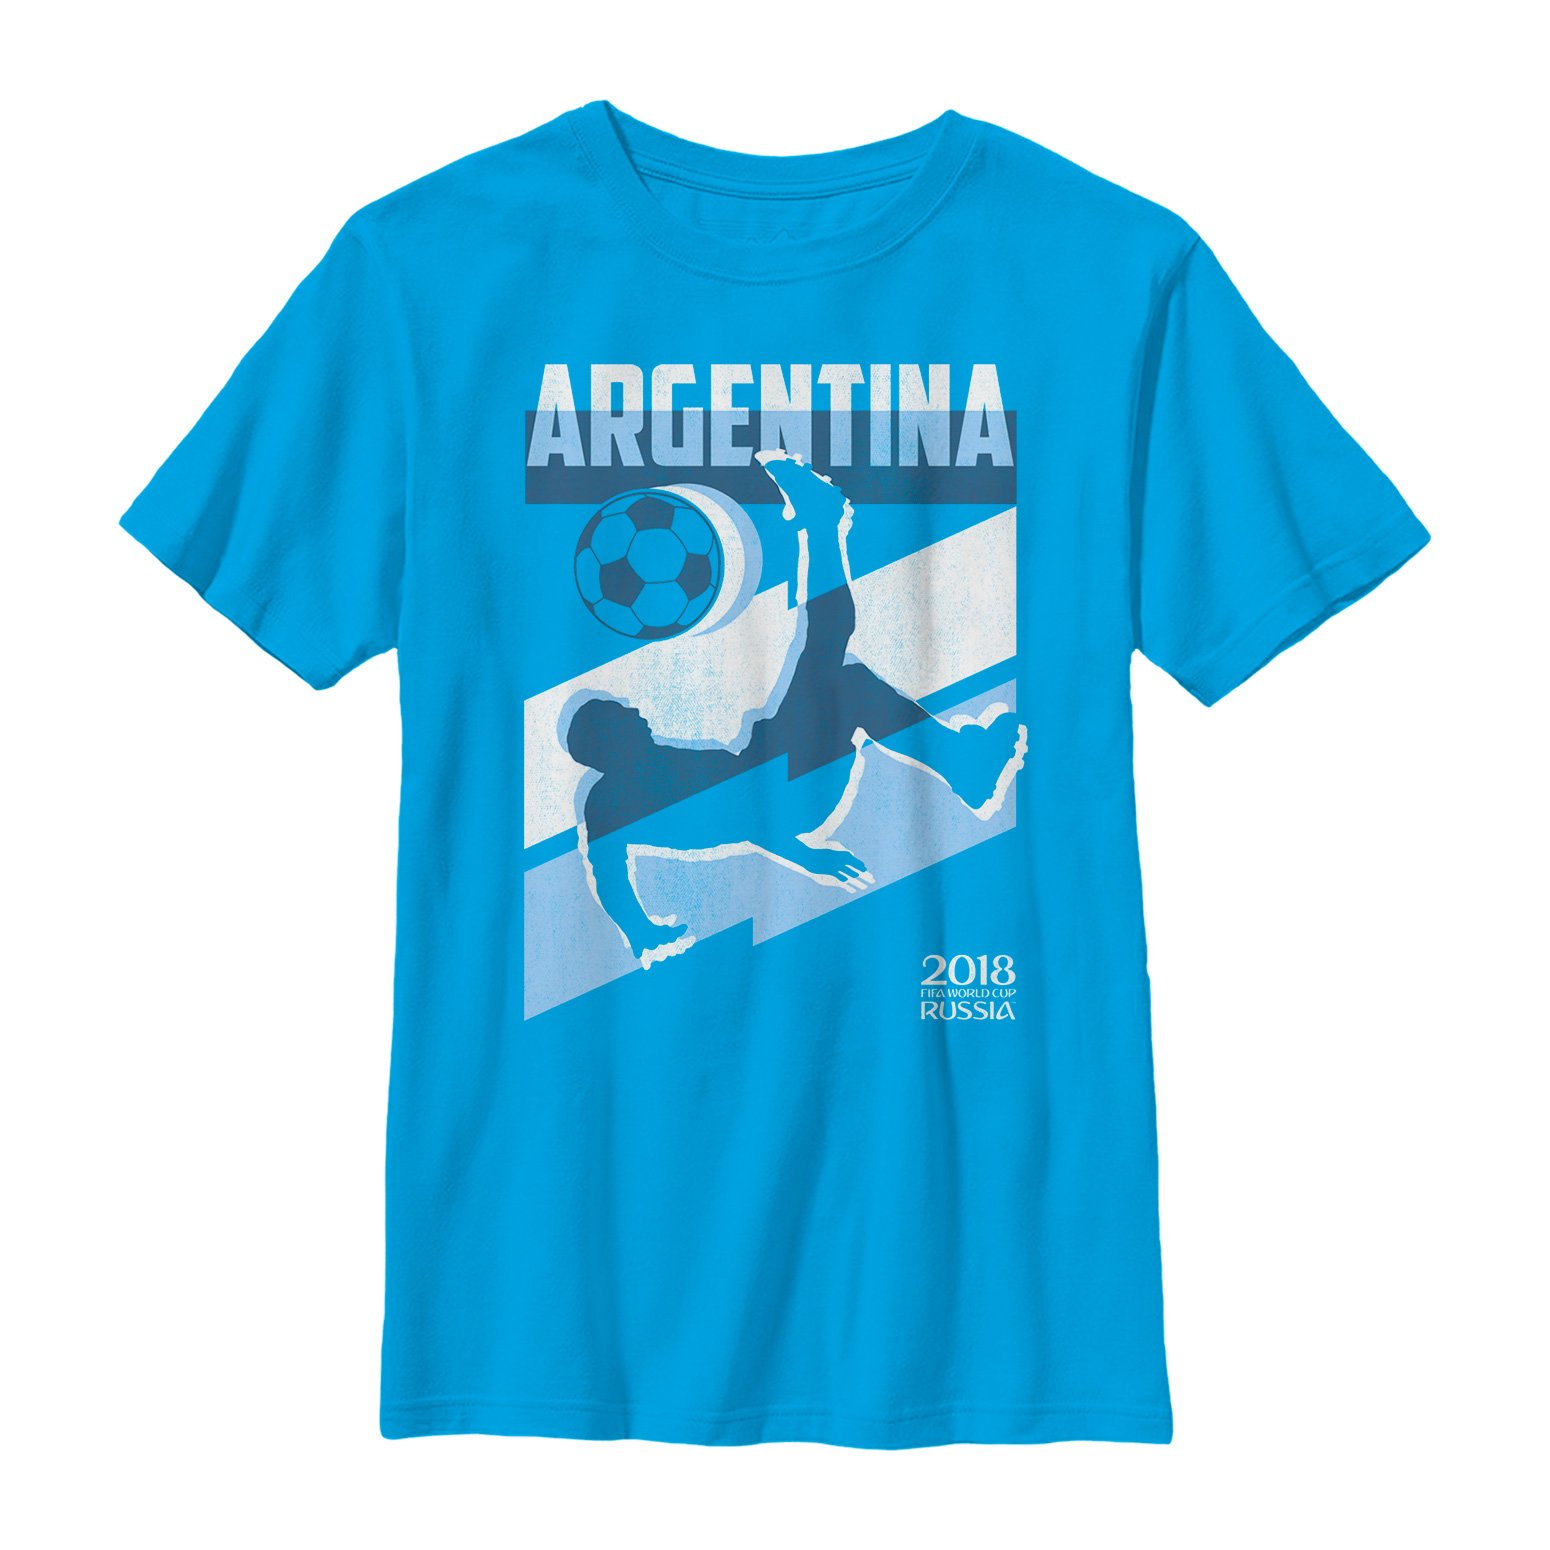 FIFA World Cup Russia 2018 Boys' Argentina Player Silhouette Turquoise T-Shirt